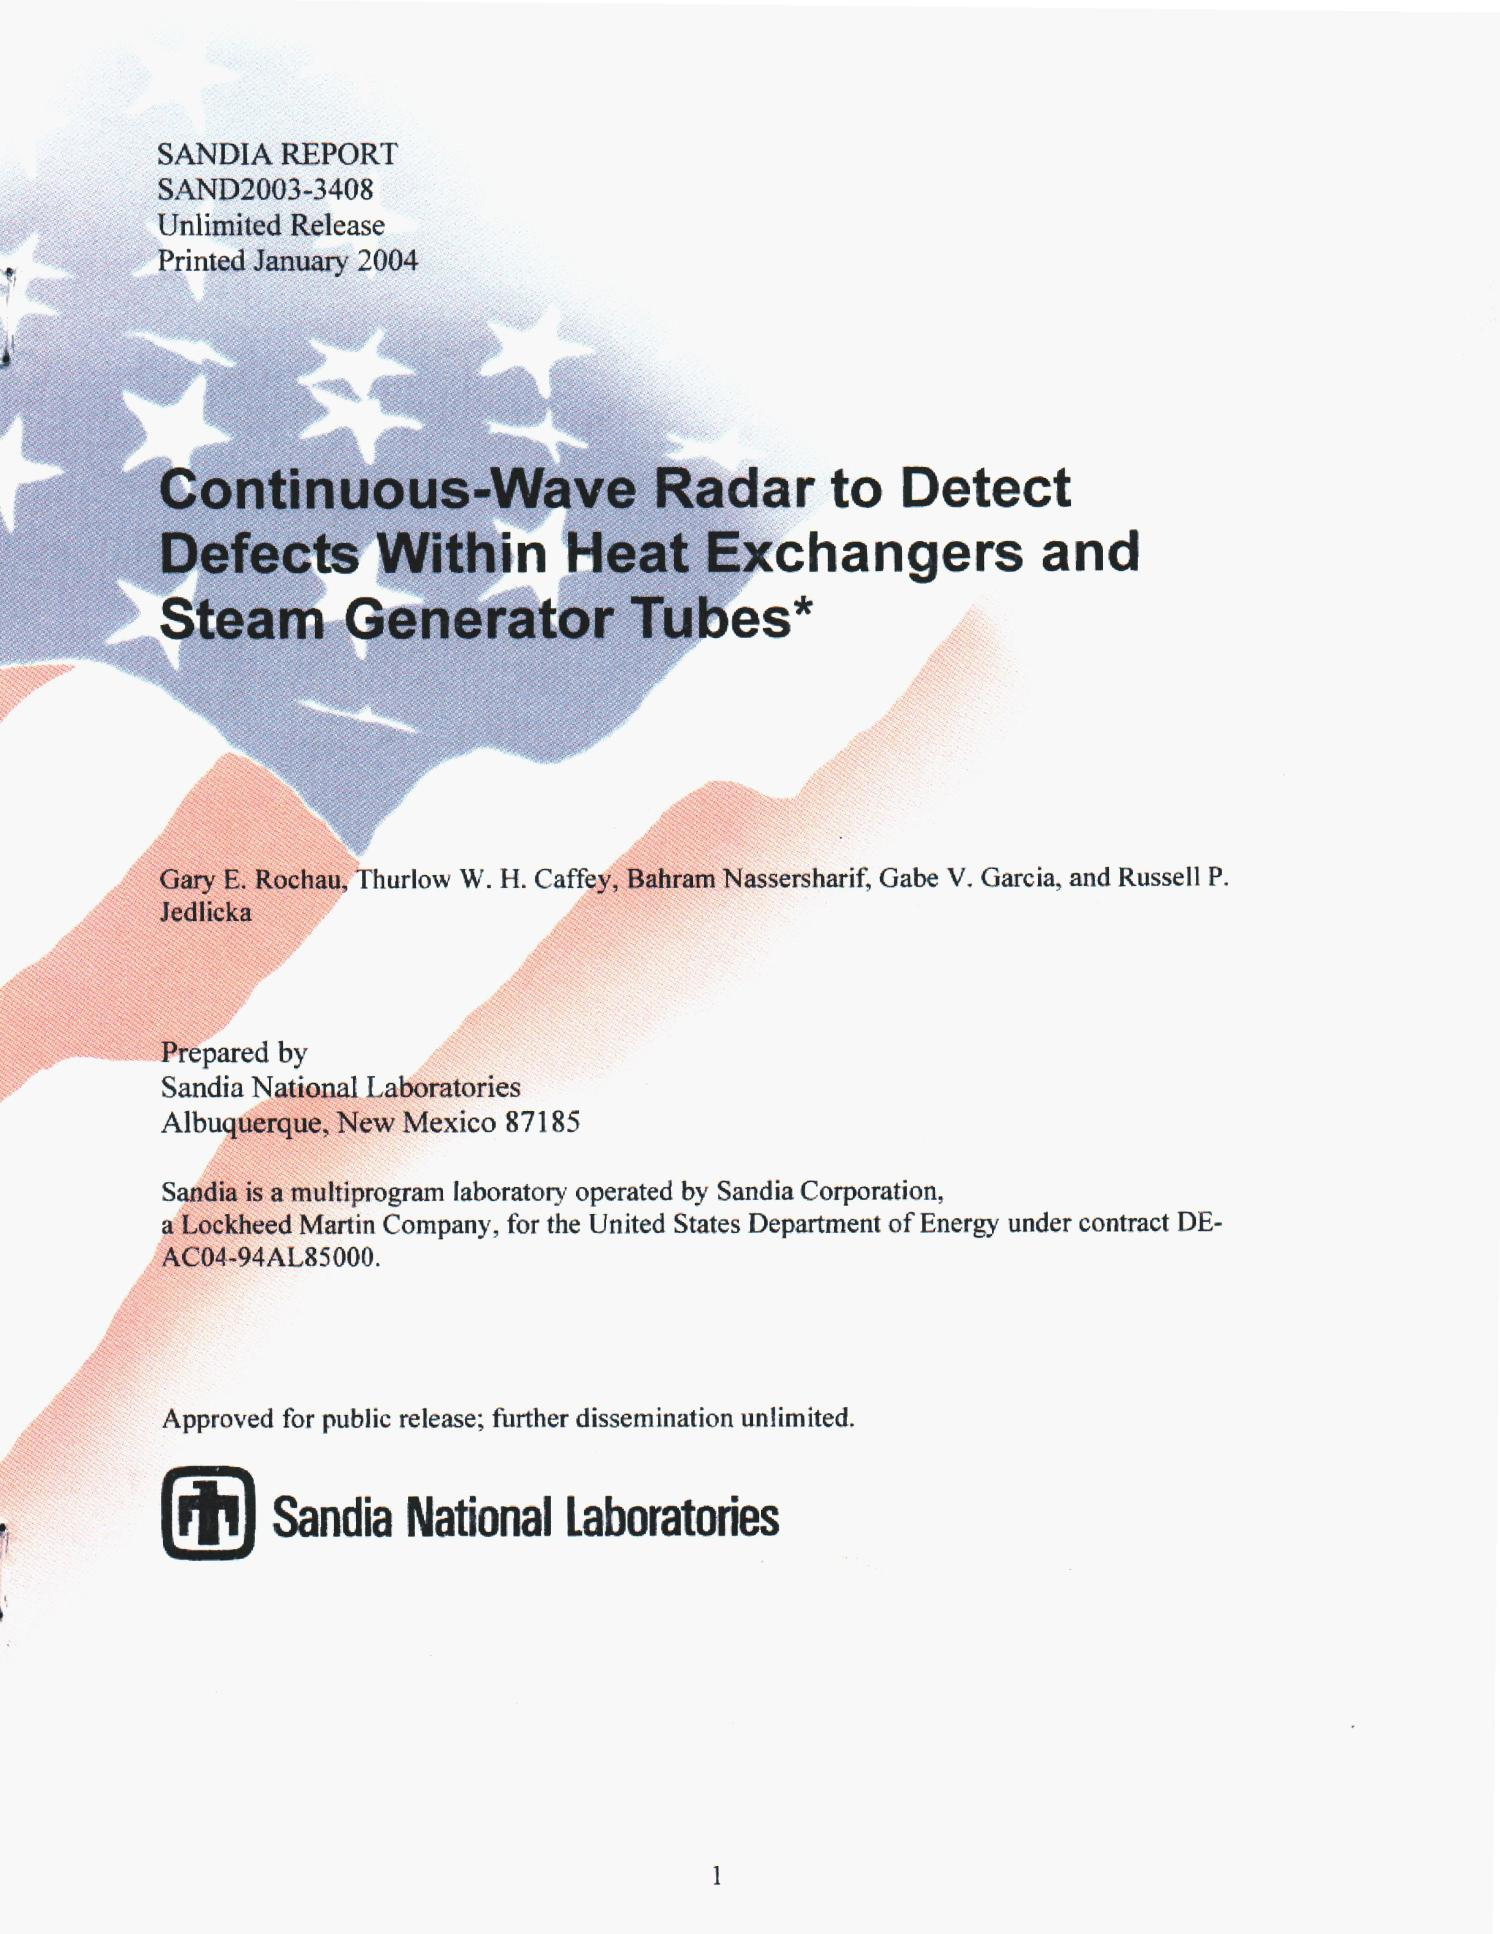 Continuous wave radar to detect defects within heat exchangers and